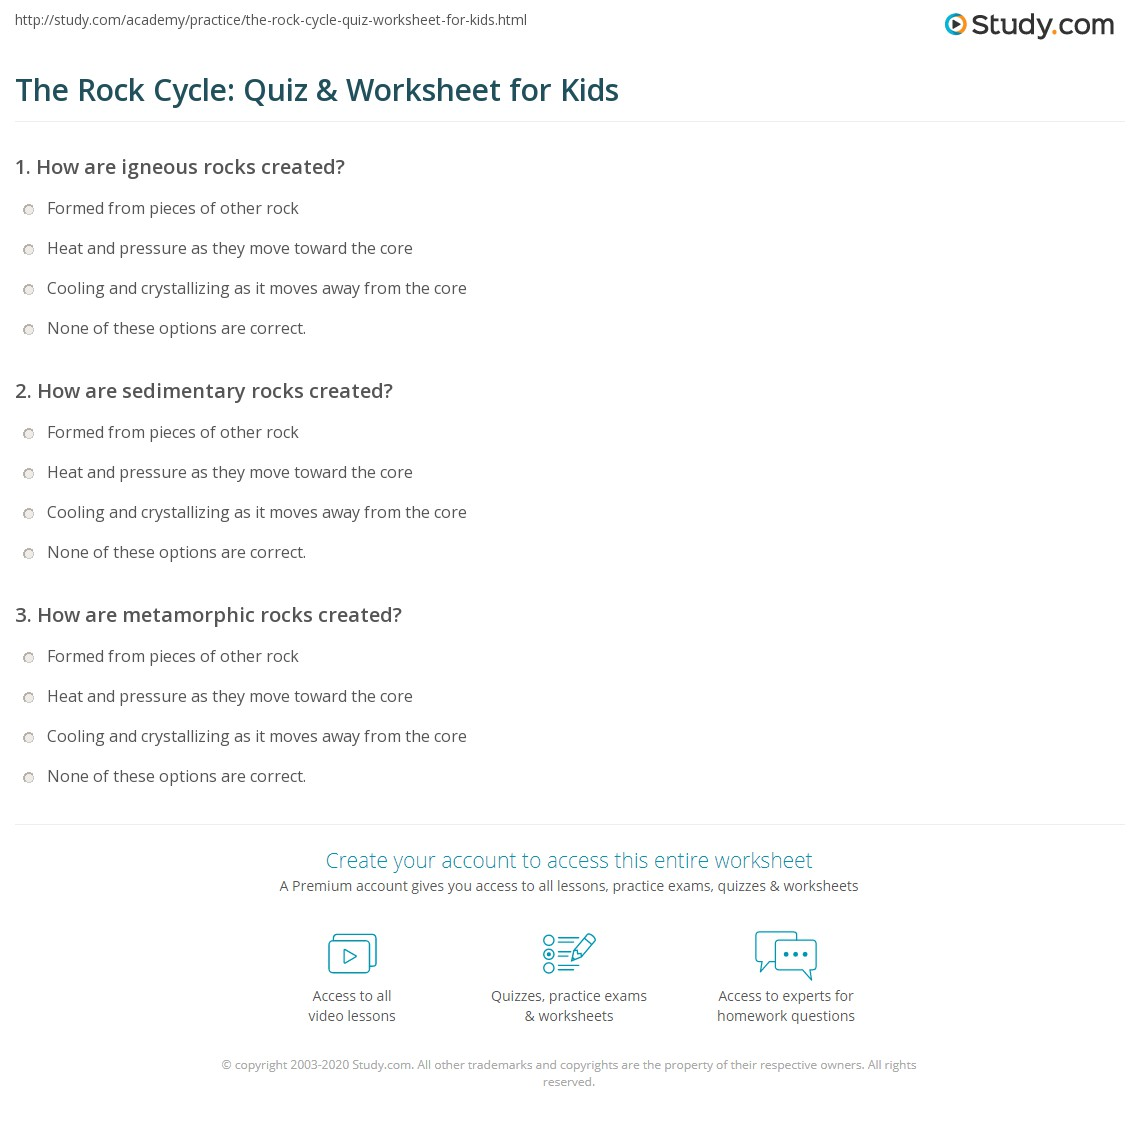 Workbooks the rock cycle worksheets : The Rock Cycle: Quiz & Worksheet for Kids | Study.com